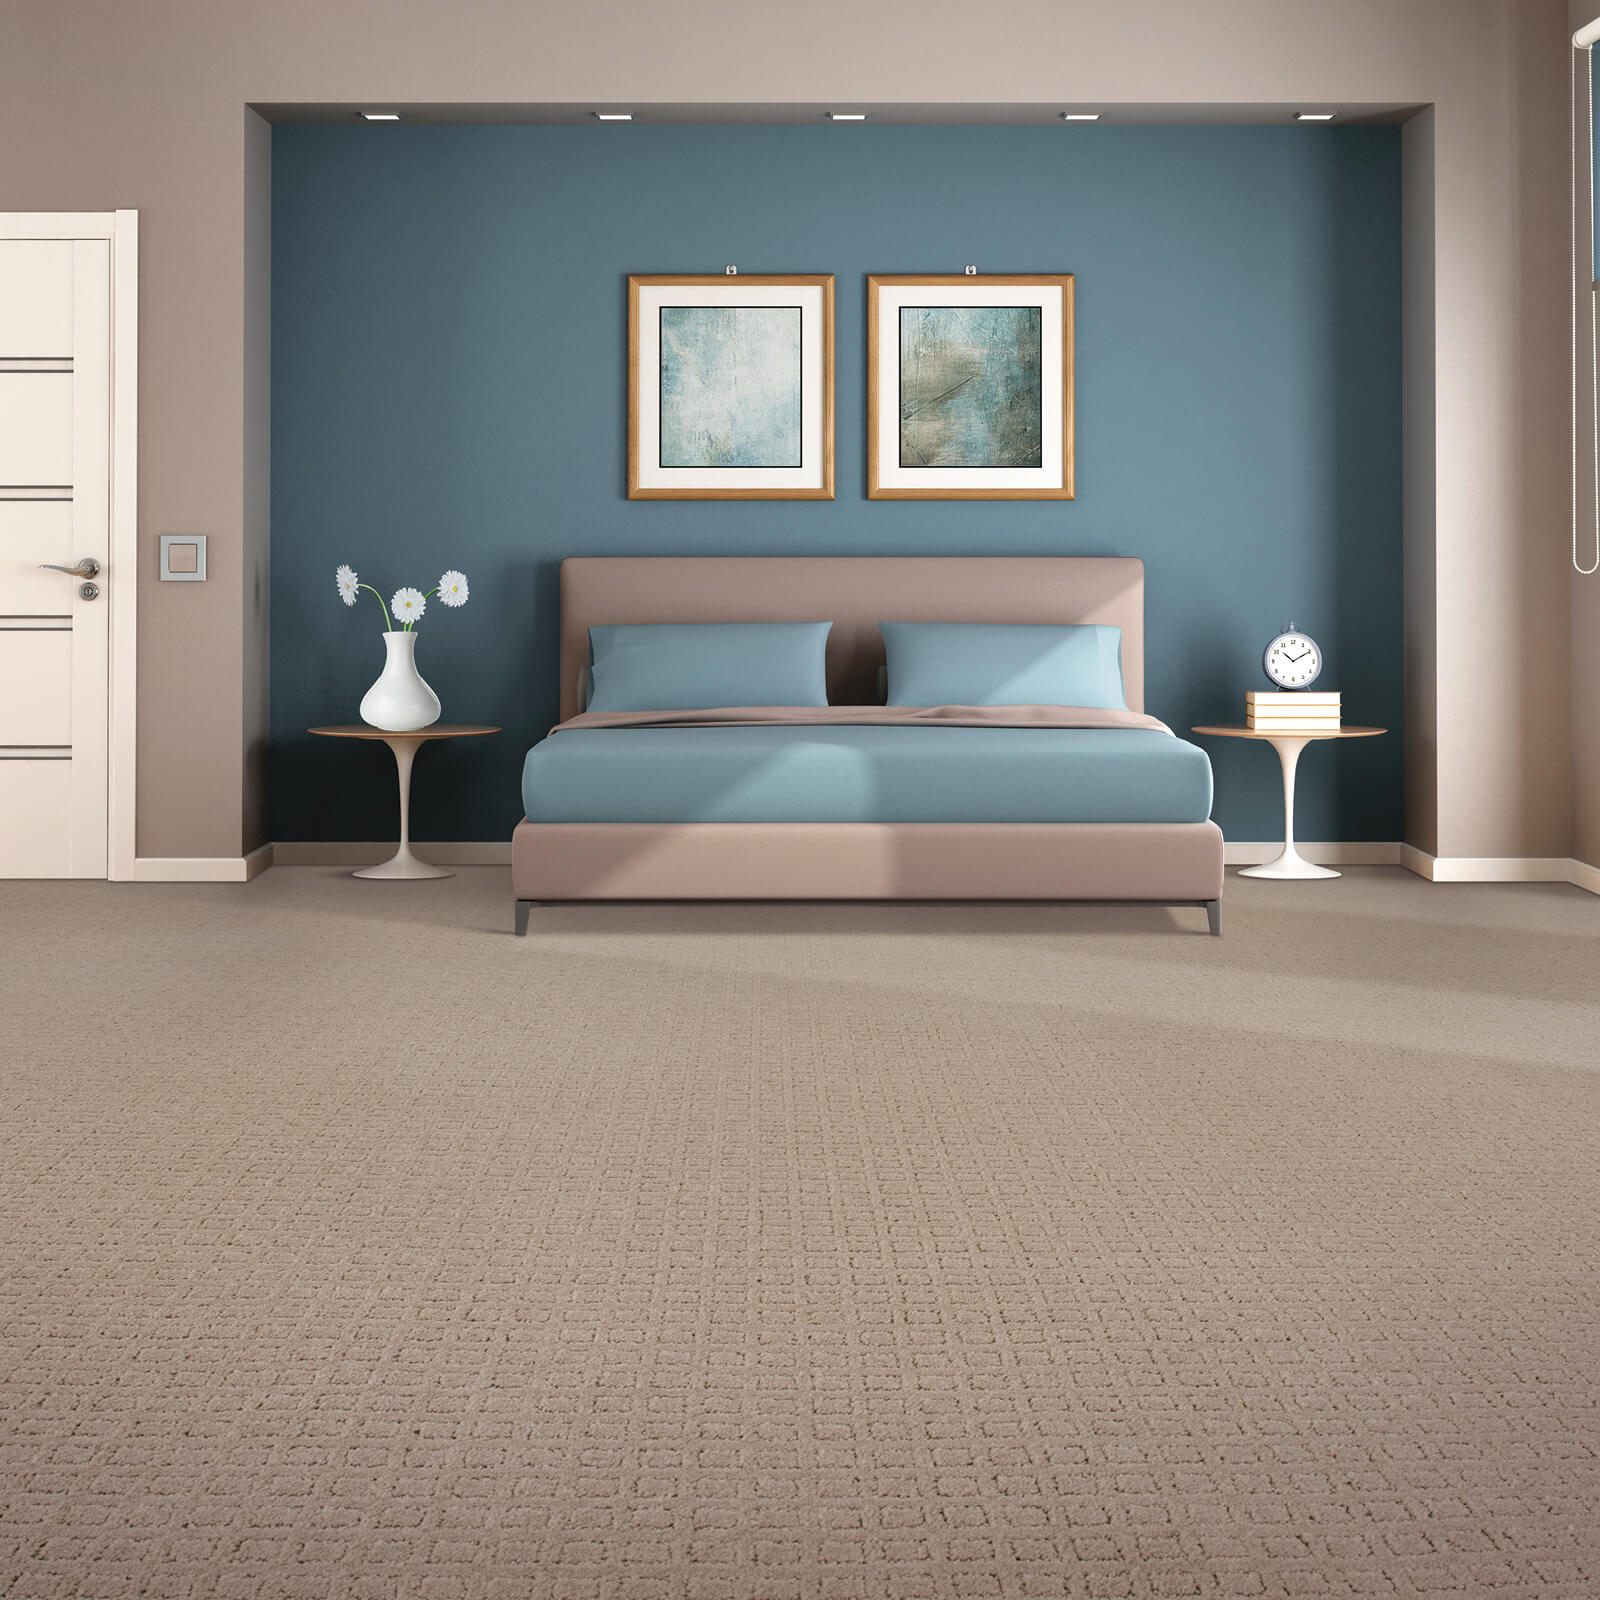 Traditional Beauty of bedroom | Floorida Floors